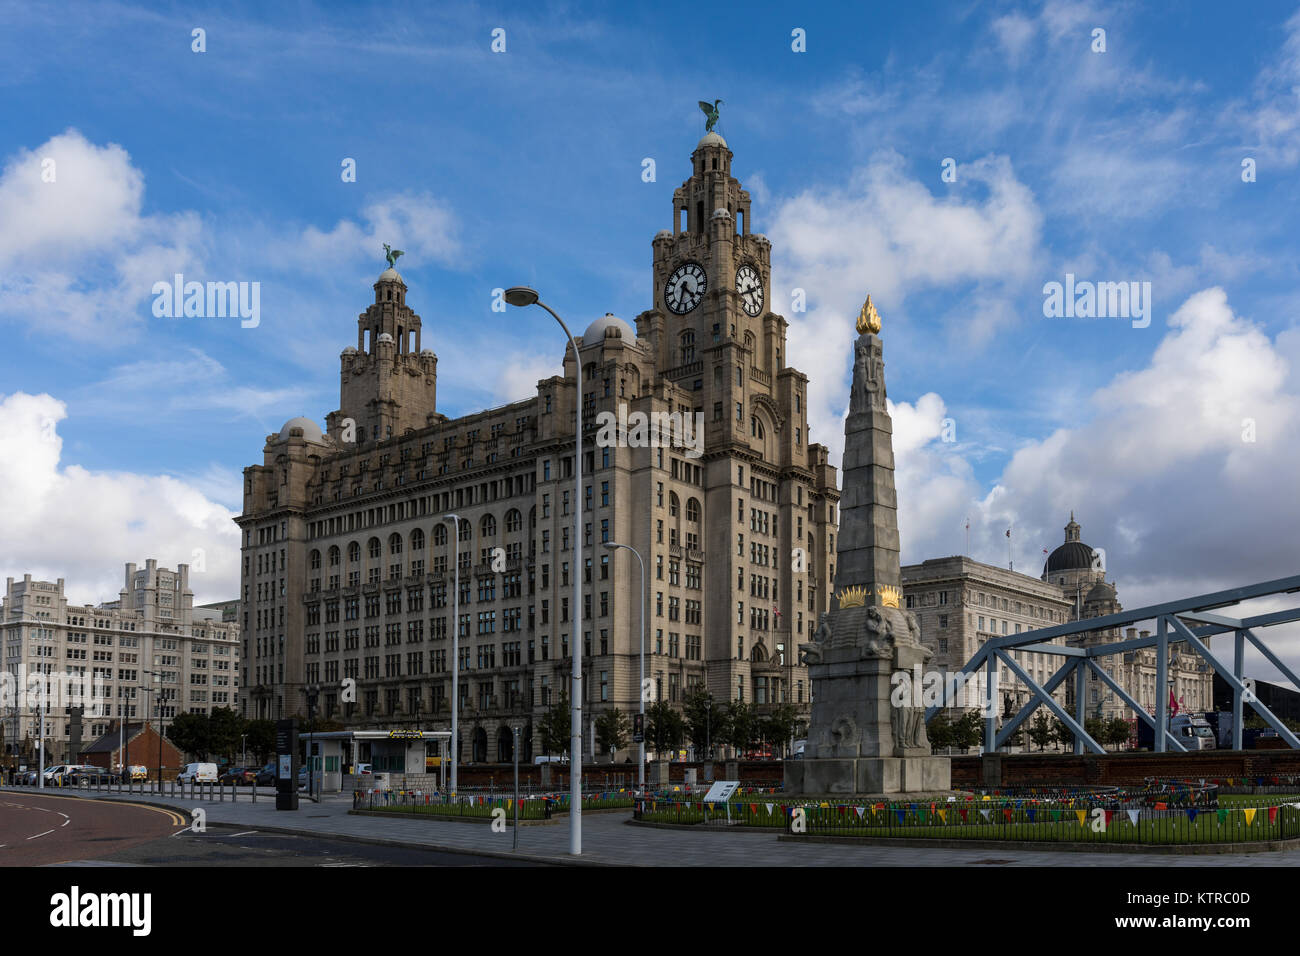 Royal Liver Building and the Memorial to the Engine Room Heroes of the Titanic in Liverpool, Merseyside, UK Stock Photo